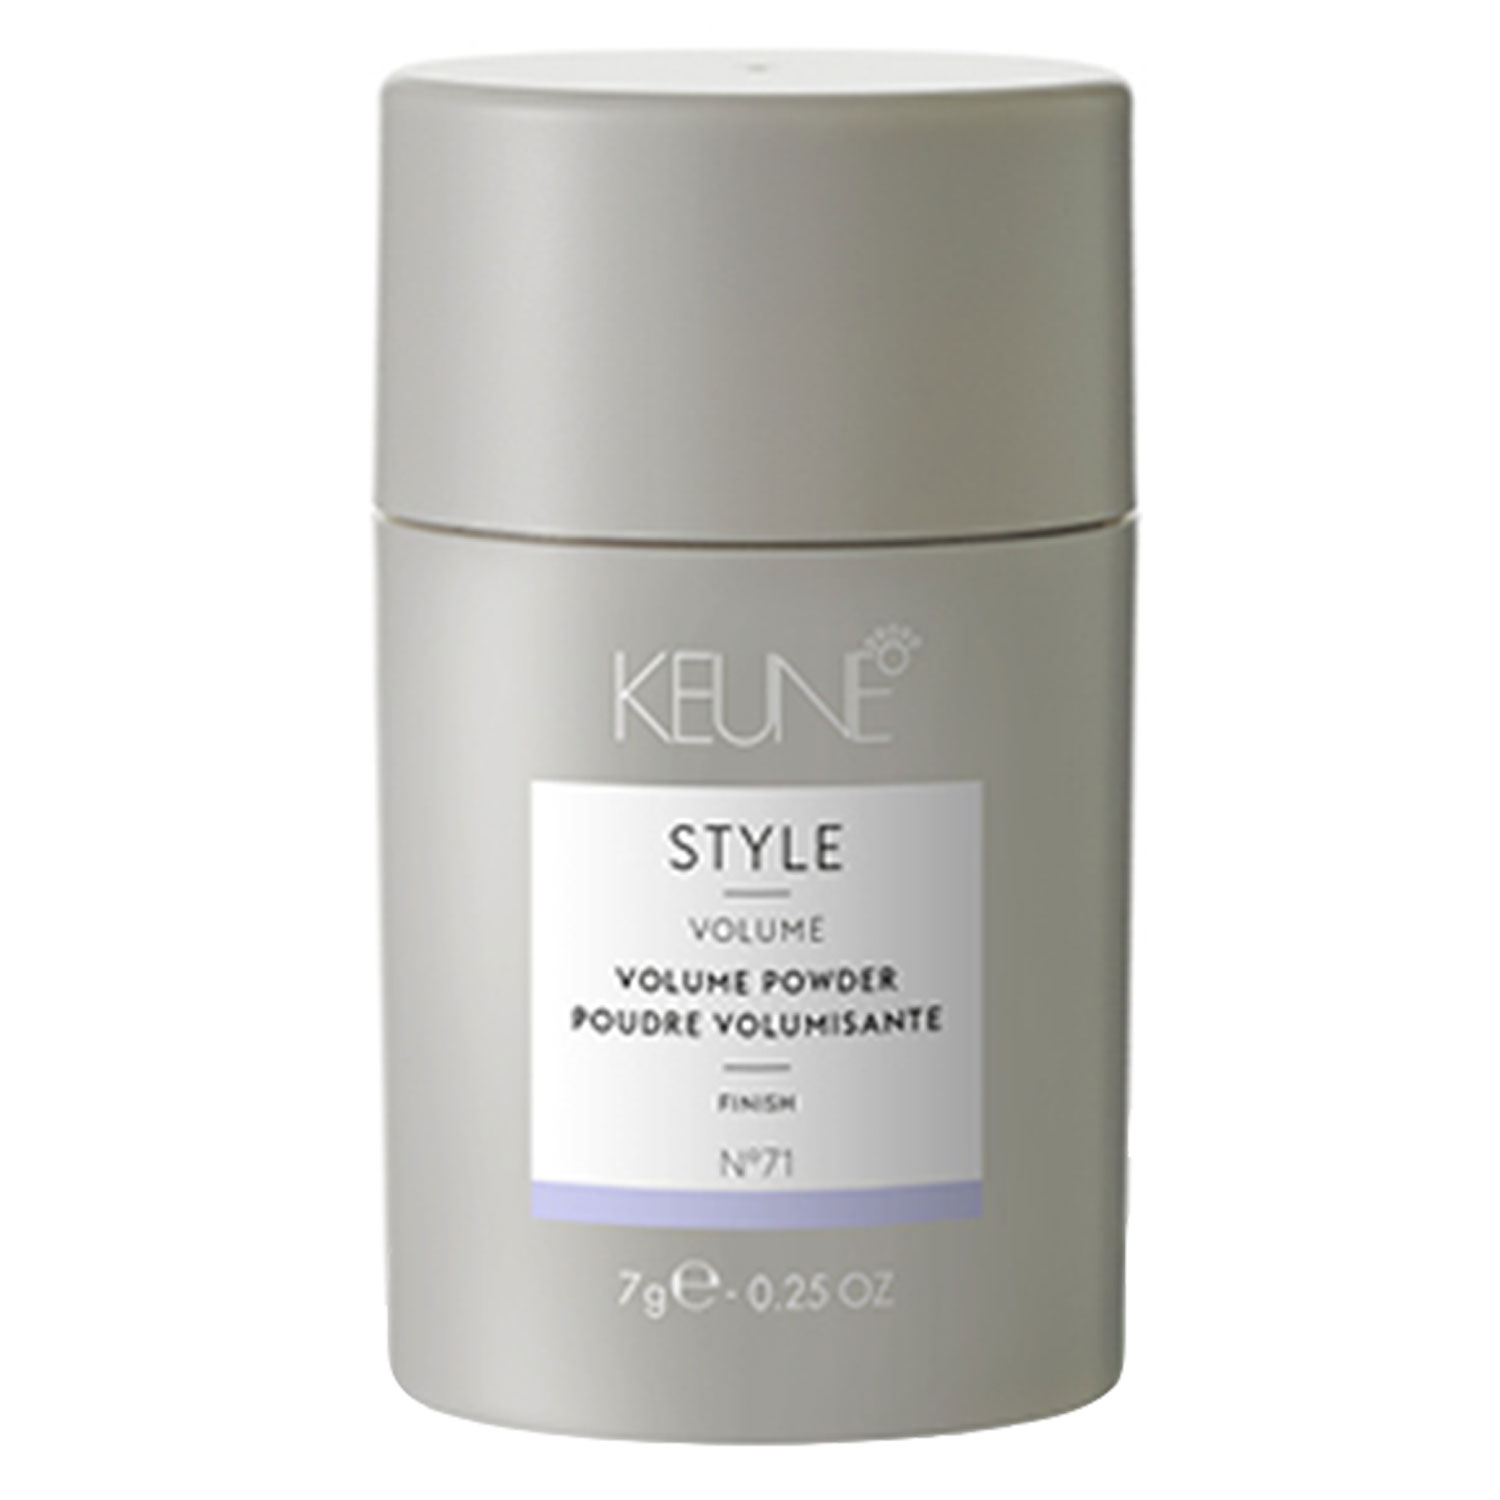 Keune Style - Volume Powder